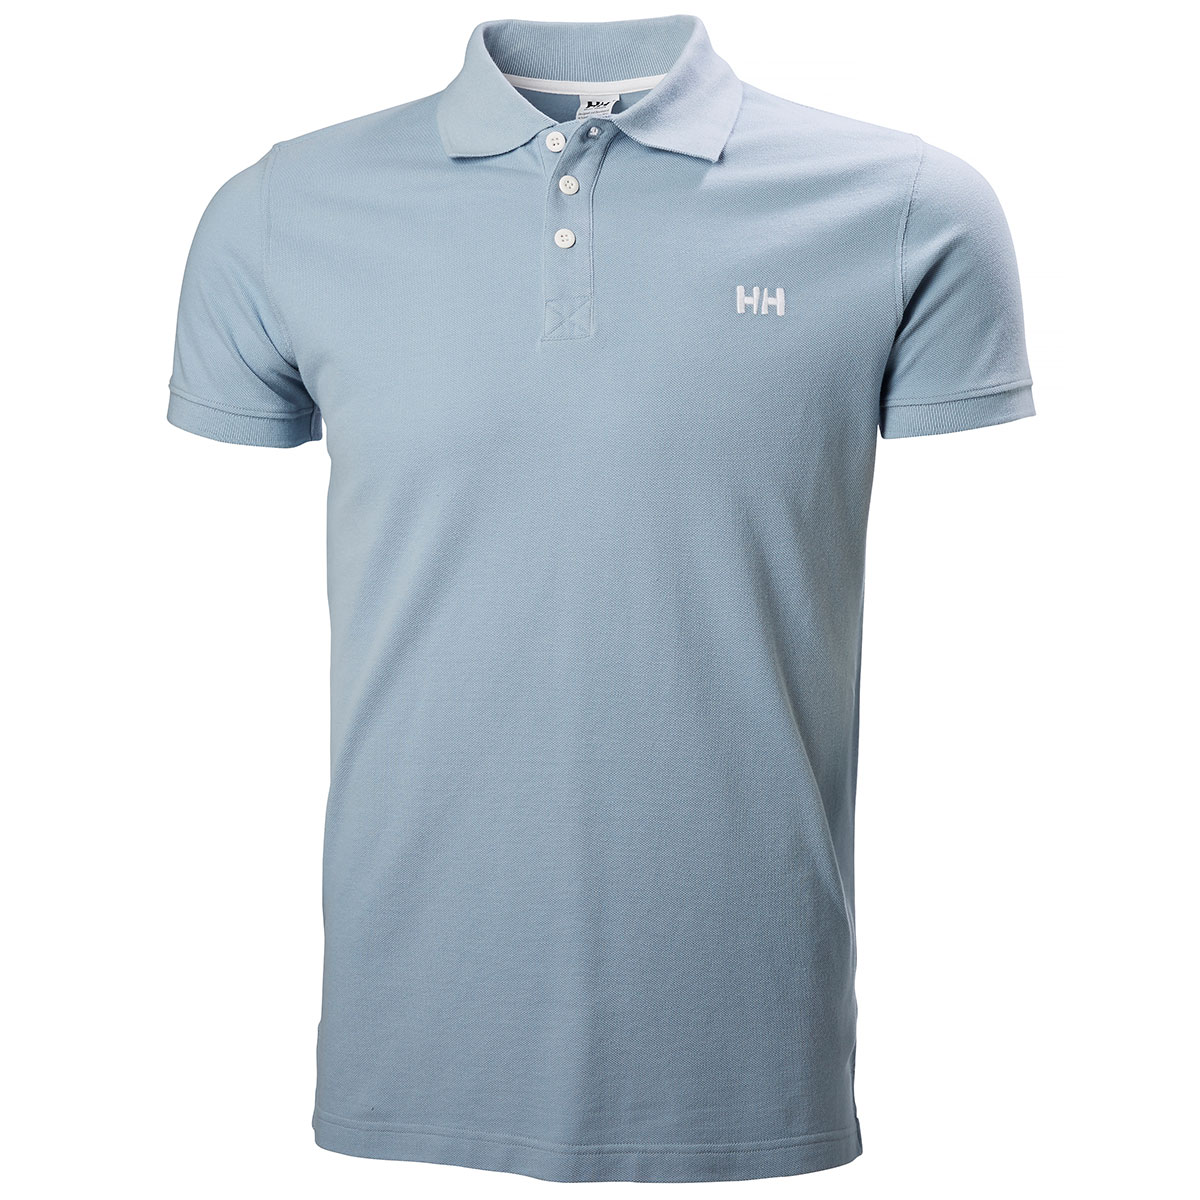 Helly hansen 2017 mens short sleeve transat cotton polo for Men s cotton polo shirts with pocket